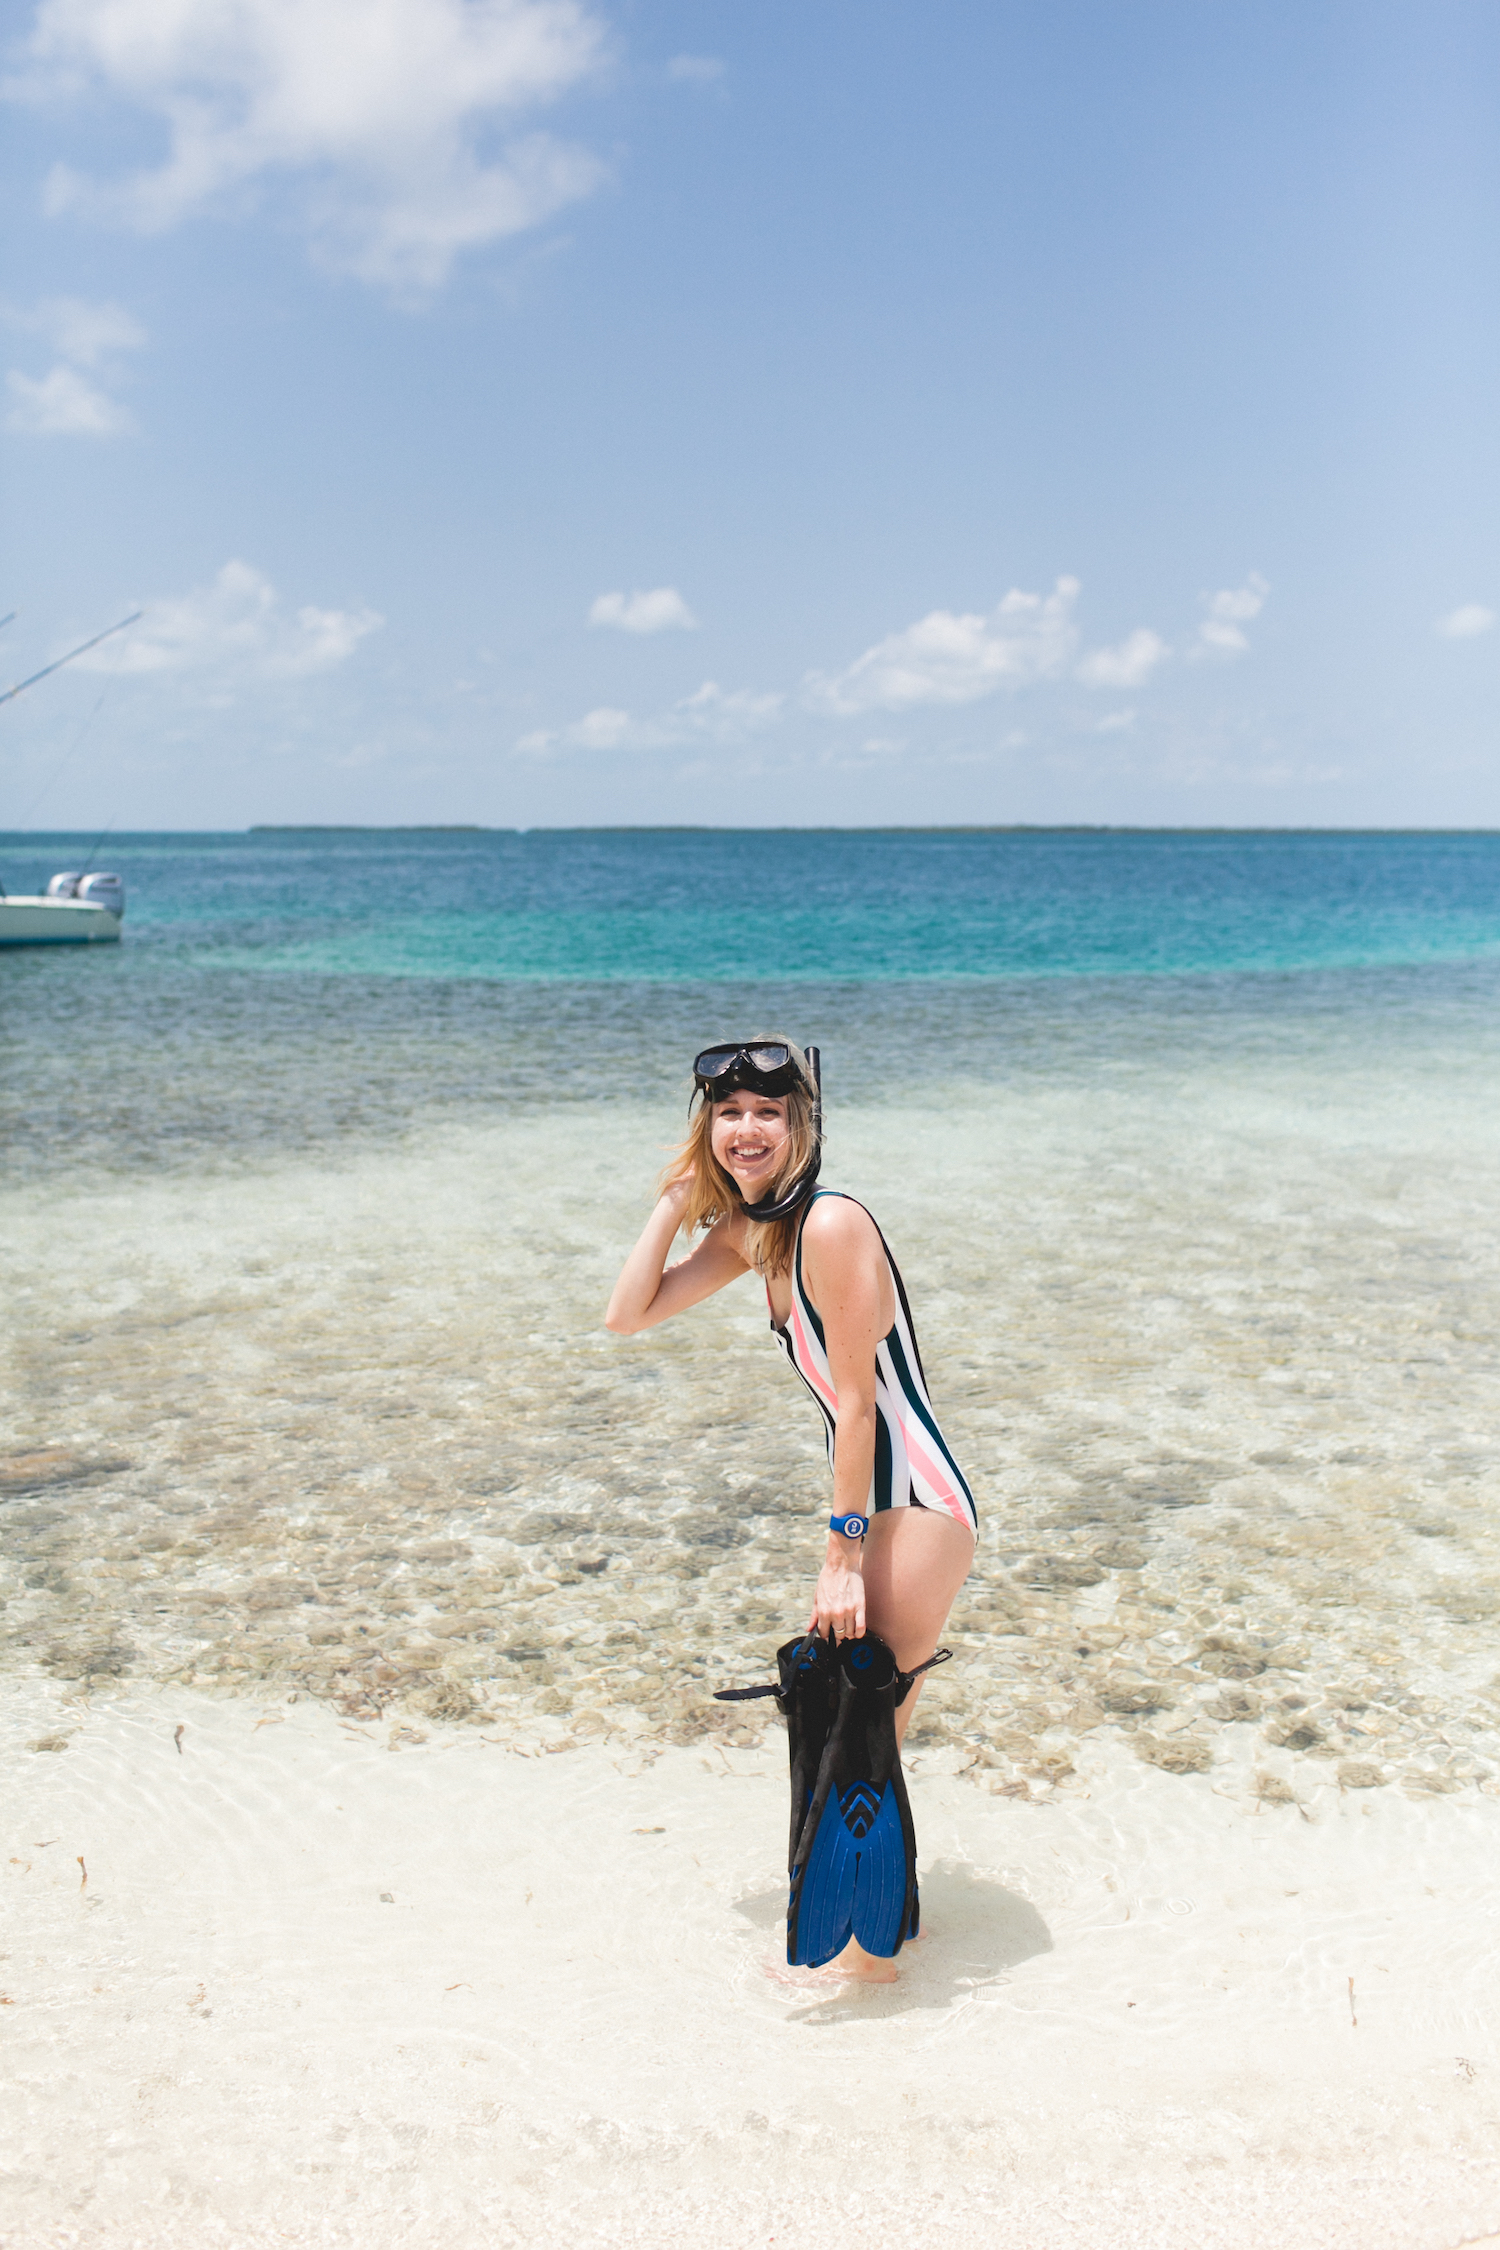 Princess Cruises, OceanMedallion, Caribbean cruise, travel, travel blog, style blogger, summer vacation, travel tips, cruising, Caribbean Princess, dream trip, snorkeling, Belize, white sandy beach, clear water, beach day, solid and striped, one-piece swimsuit